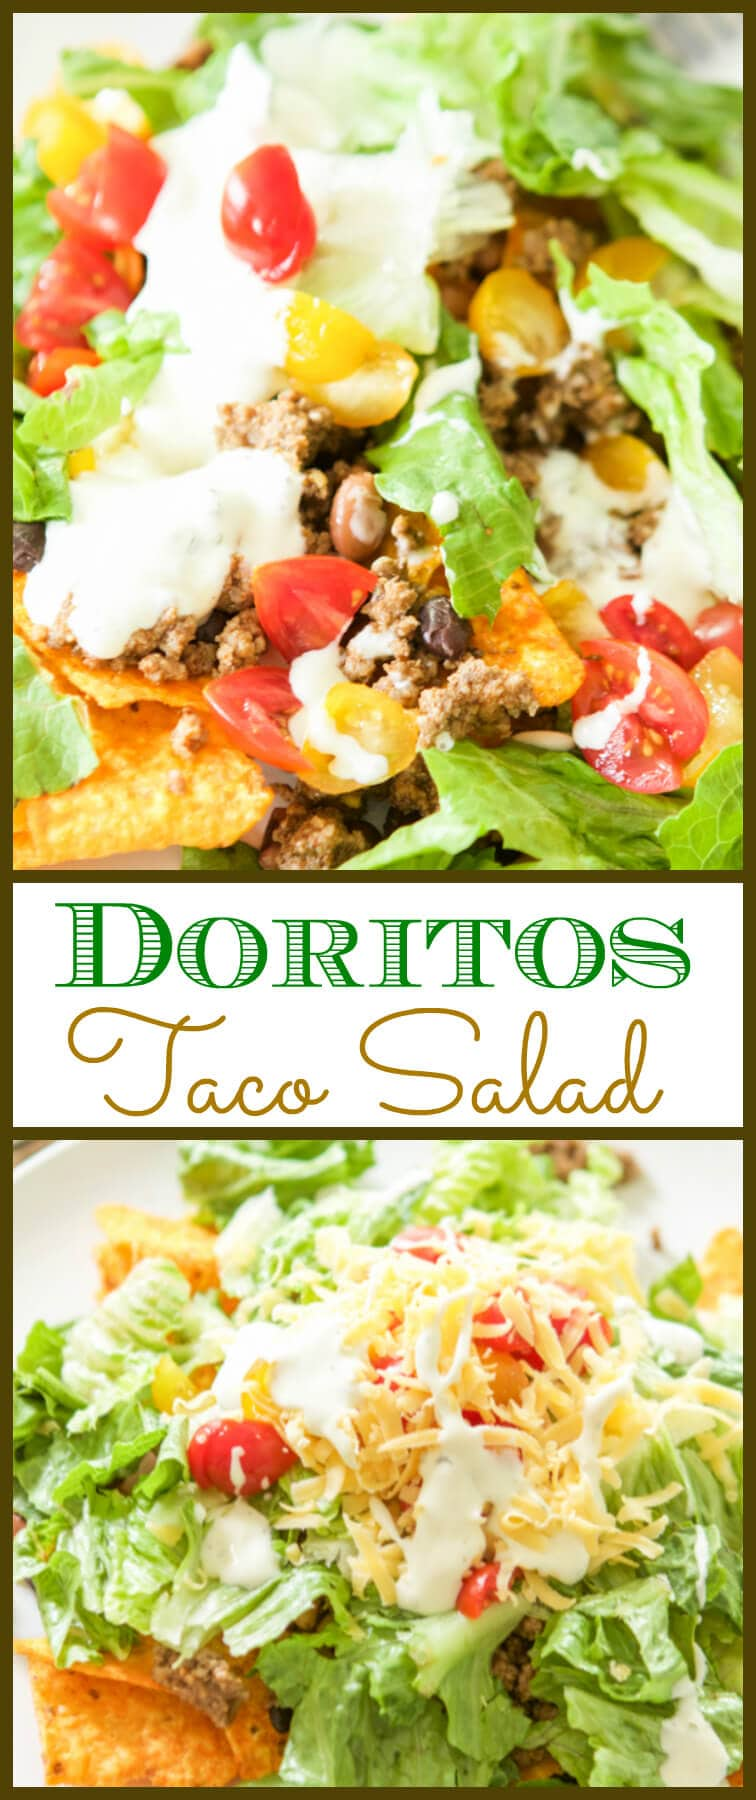 This is not as crazy as it seems. Doritos taco salad is not your typical #tacotuesday meal as there are chips other than corn involved, but just trust me.